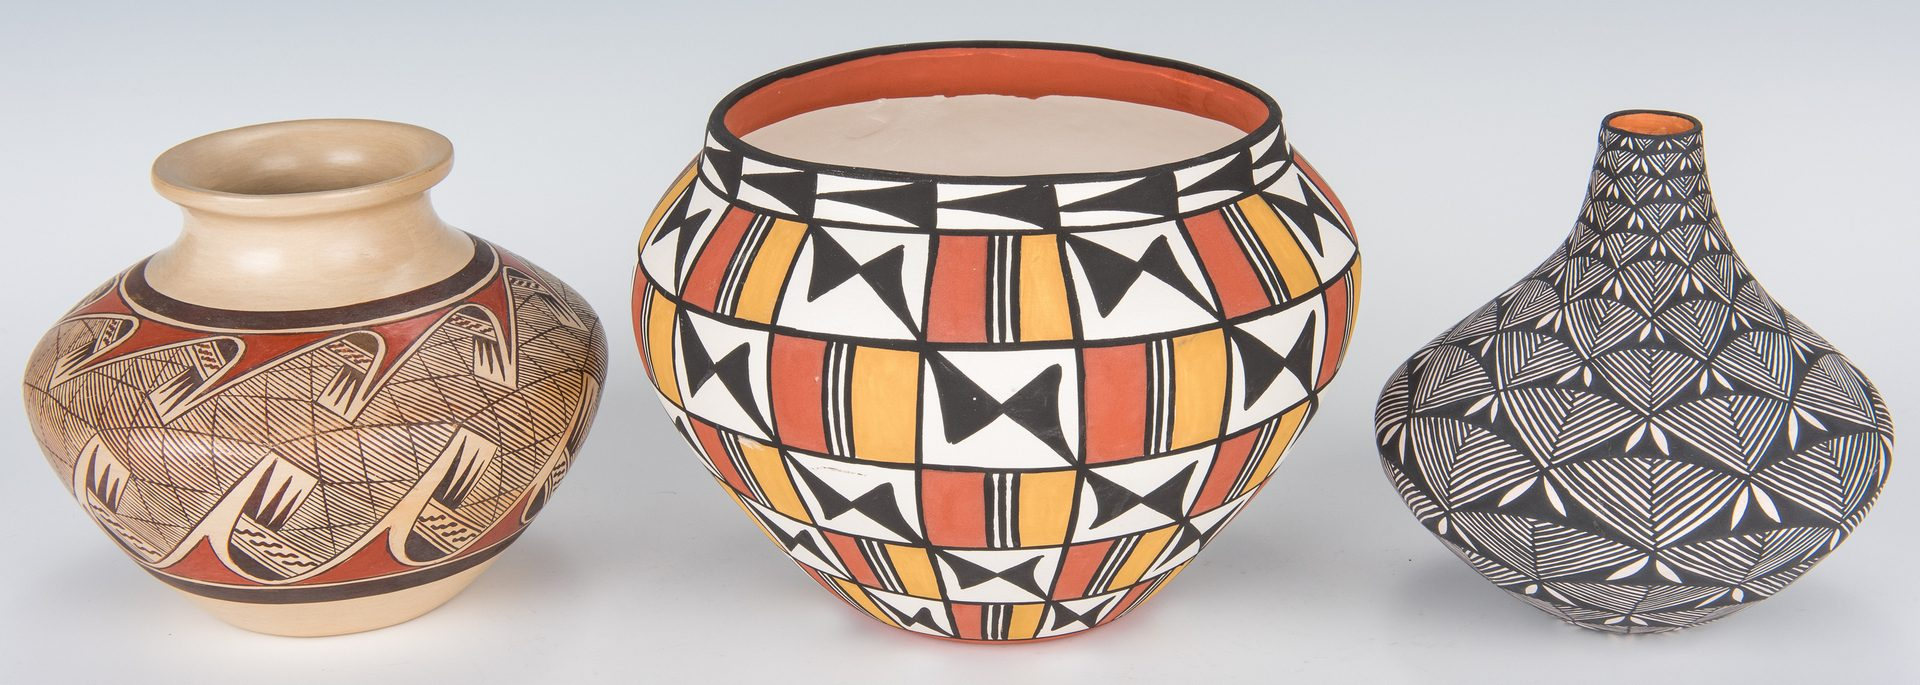 Lot 604: 6 Contemporary Native American Pottery Items